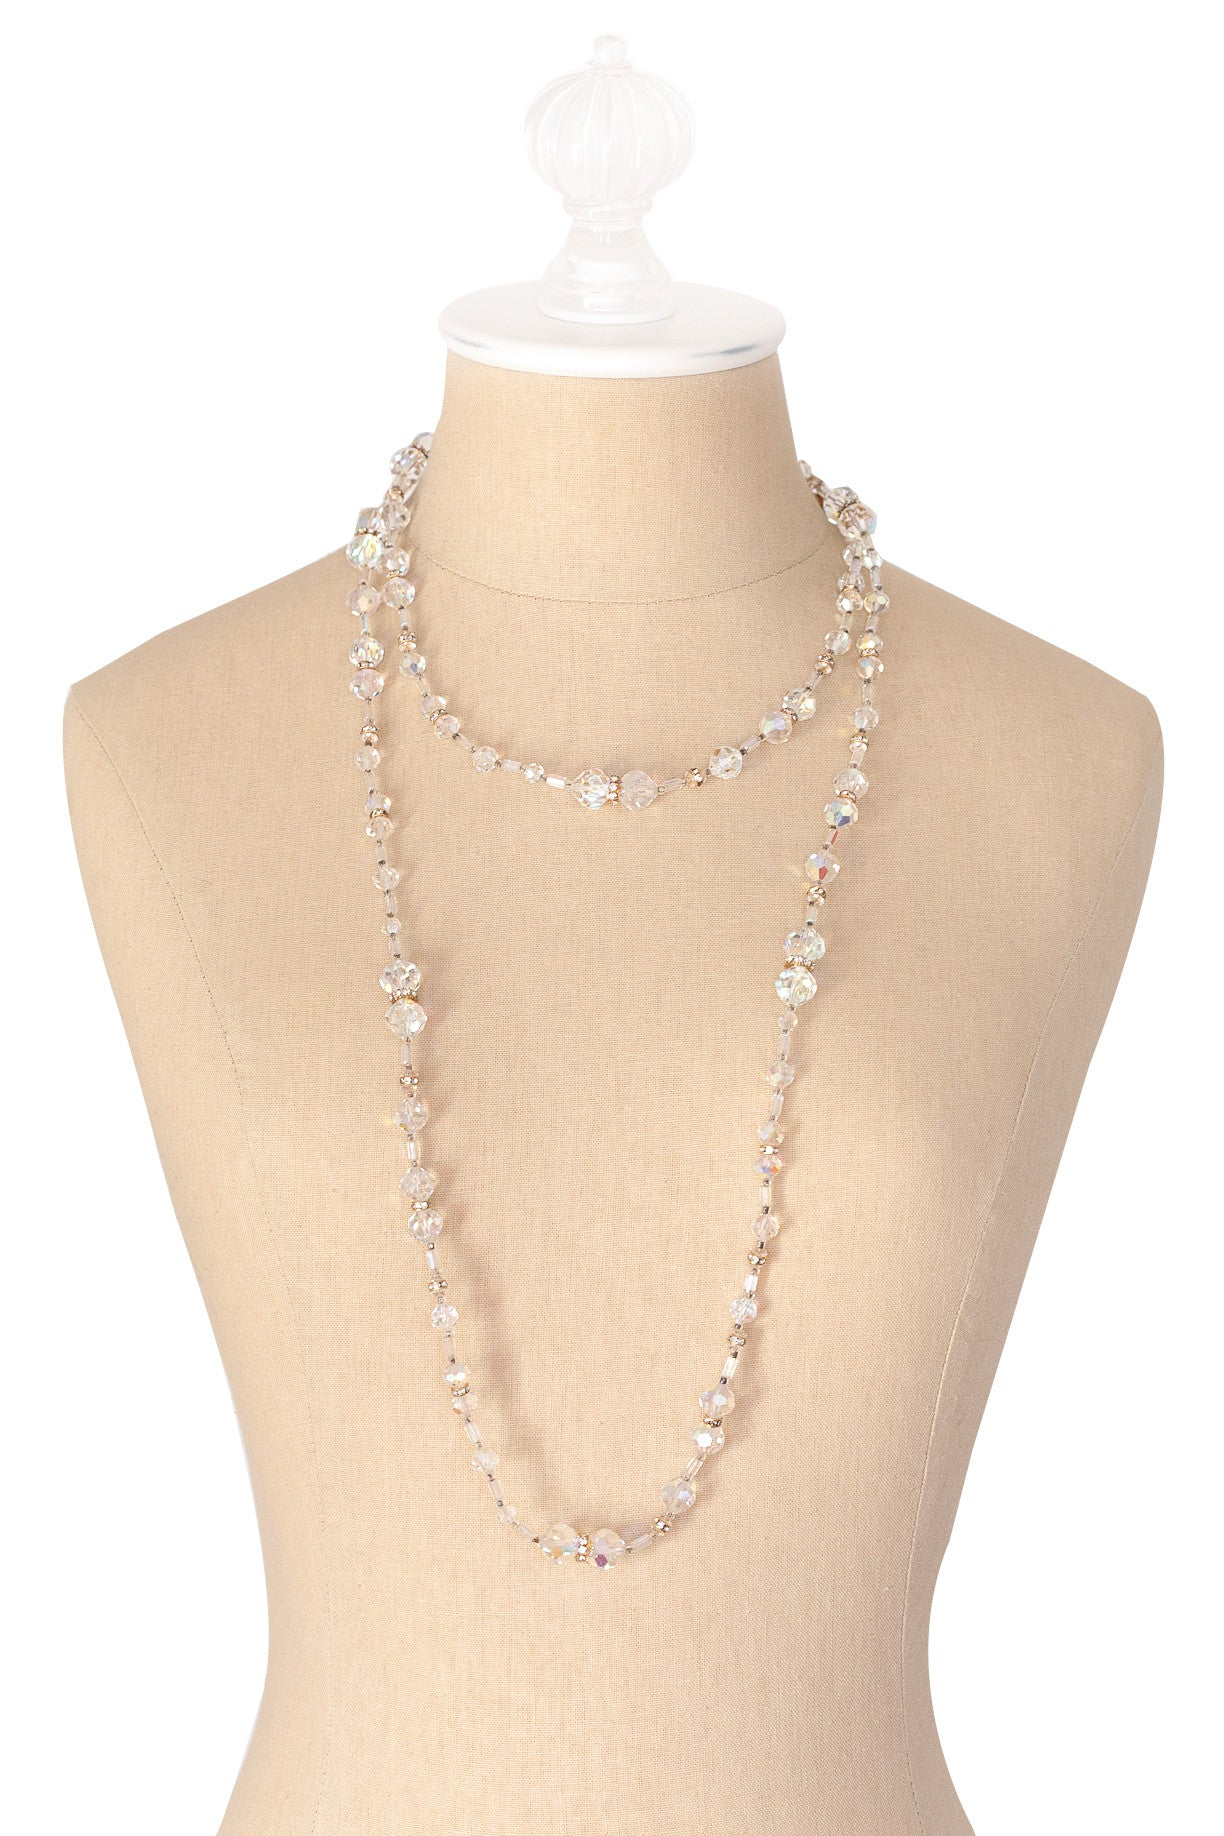 50's__Vendome__Long Crystal Necklace